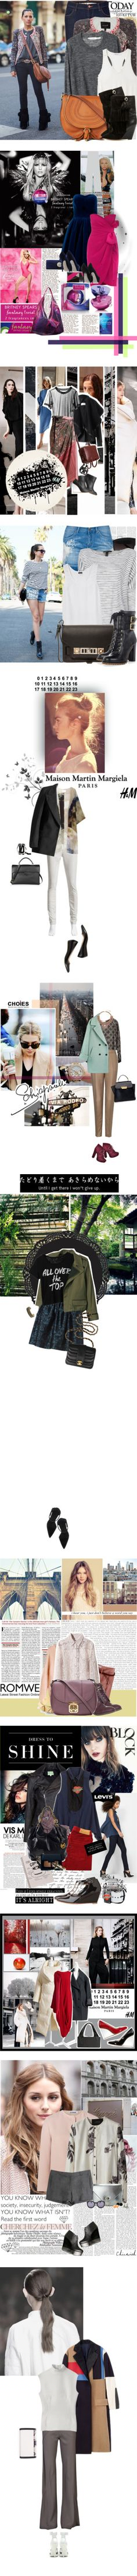 """""""Top Sets for Nov 18th, 2012"""" by polyvore ❤ liked on Polyvore"""